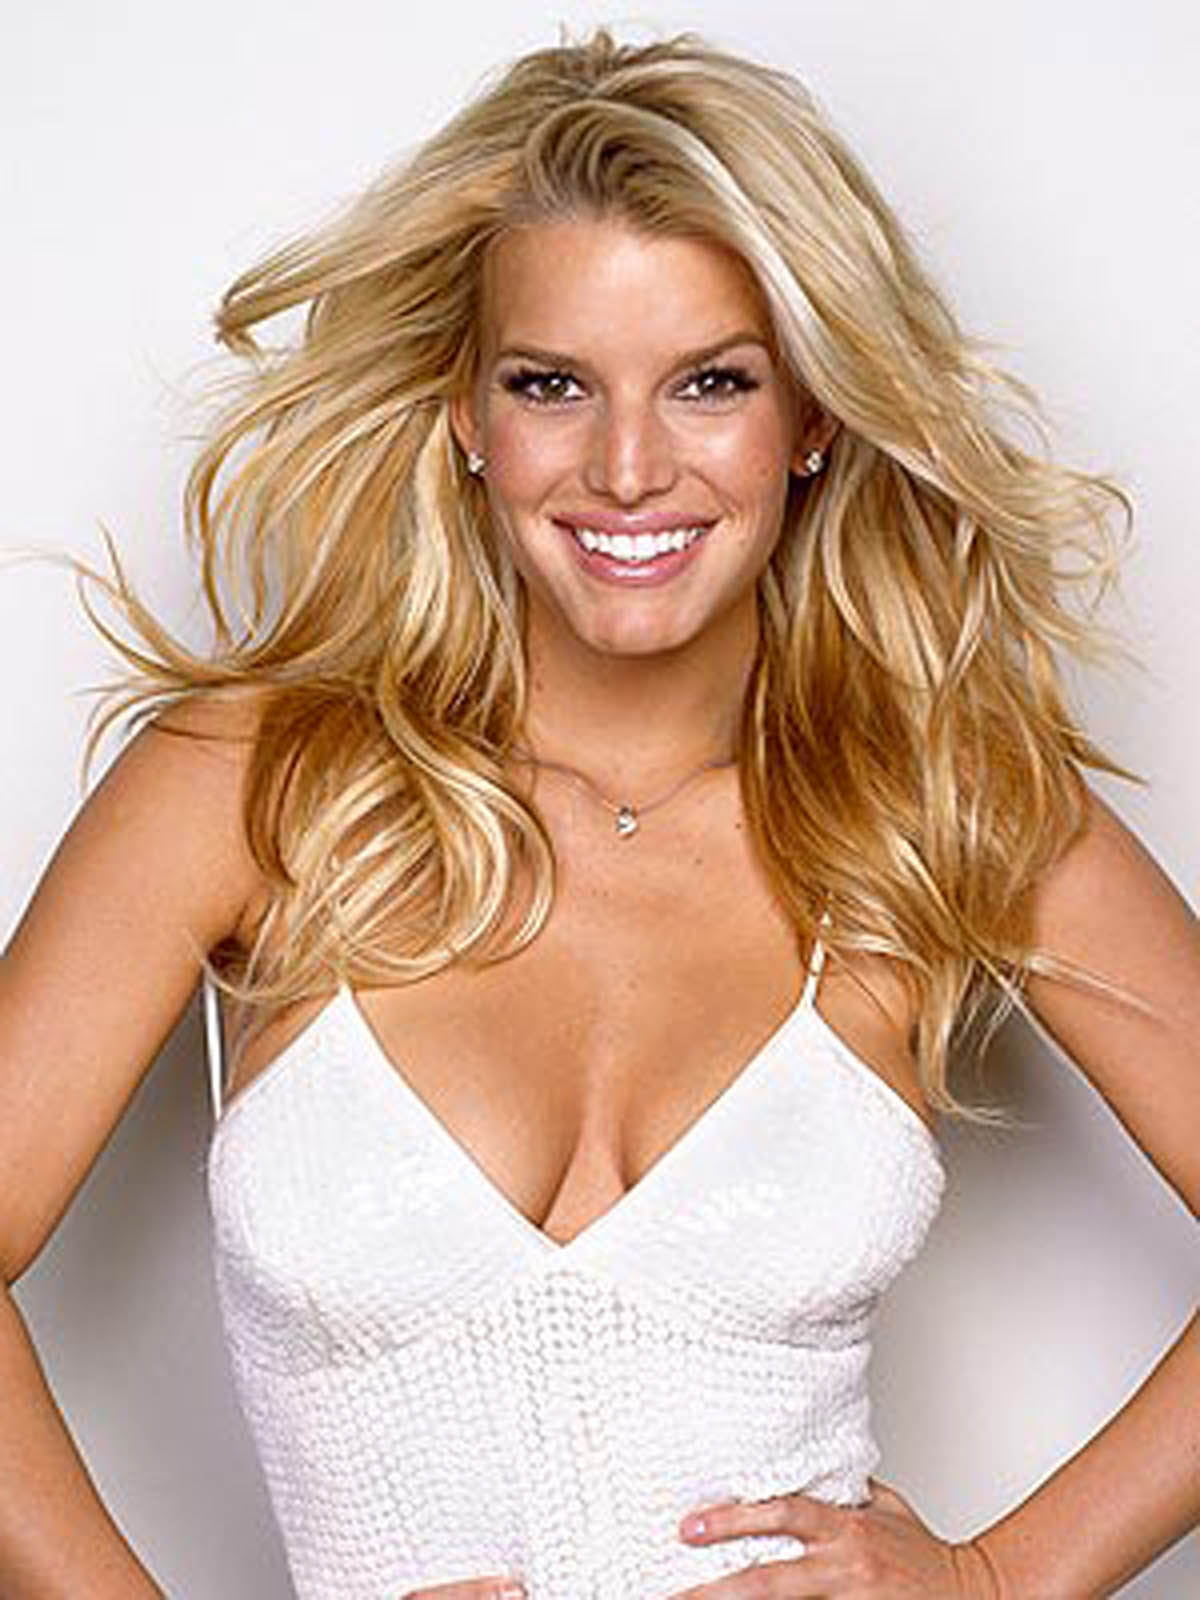 Tag: Jessica Simpson Naughty Pictures, Jessica Simpson Naughty Pics